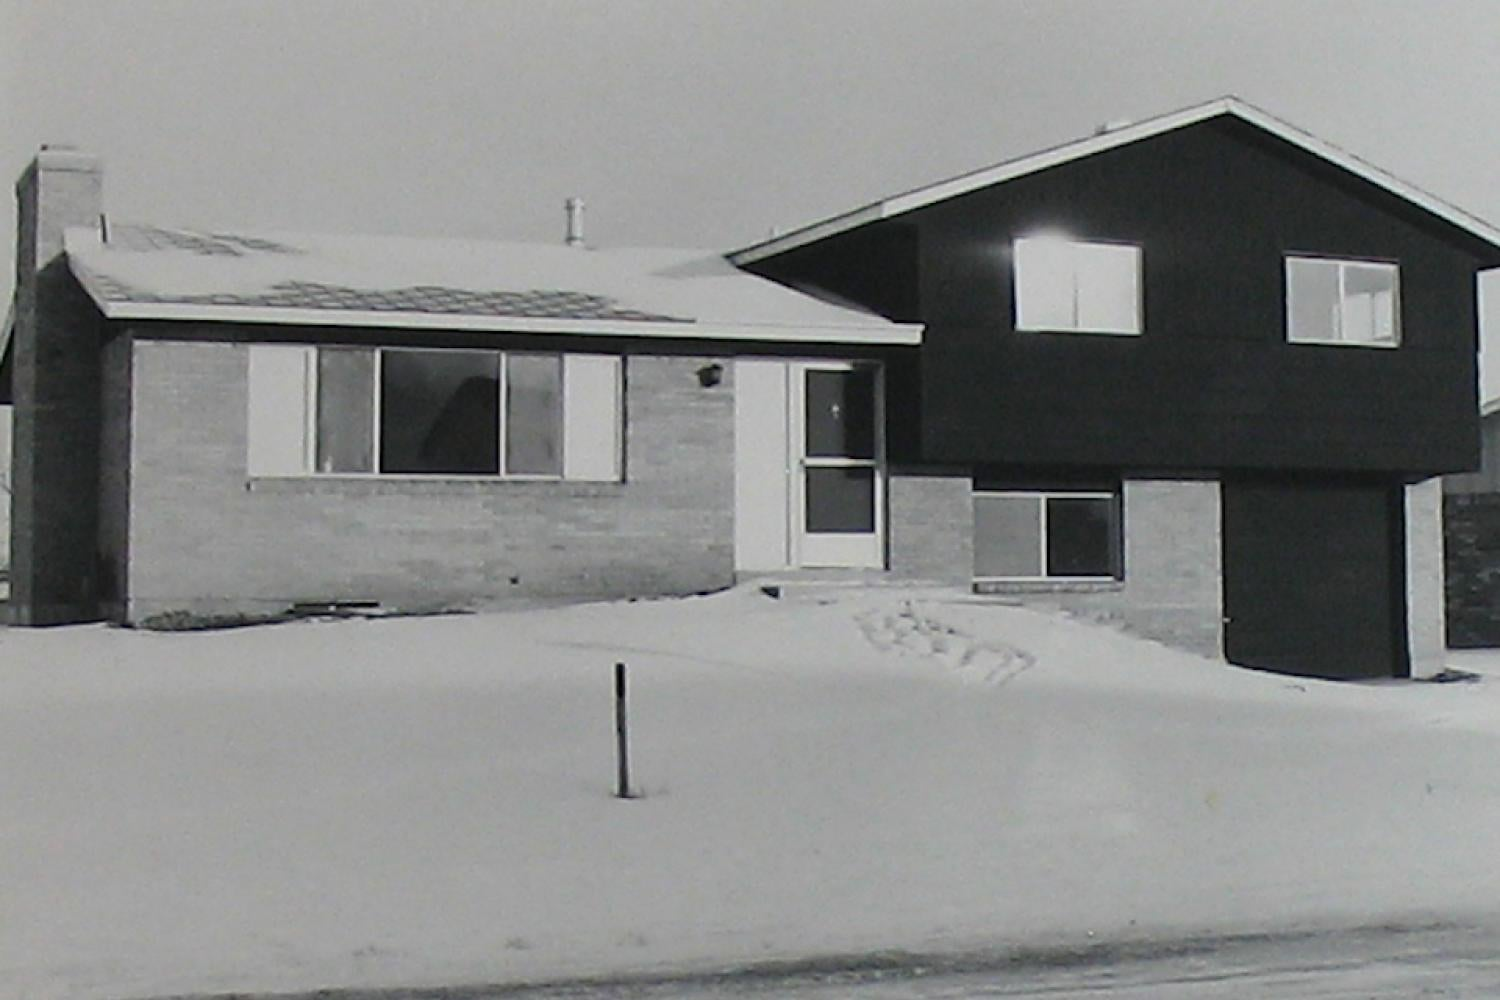 black and white photograph of a split level suburban home